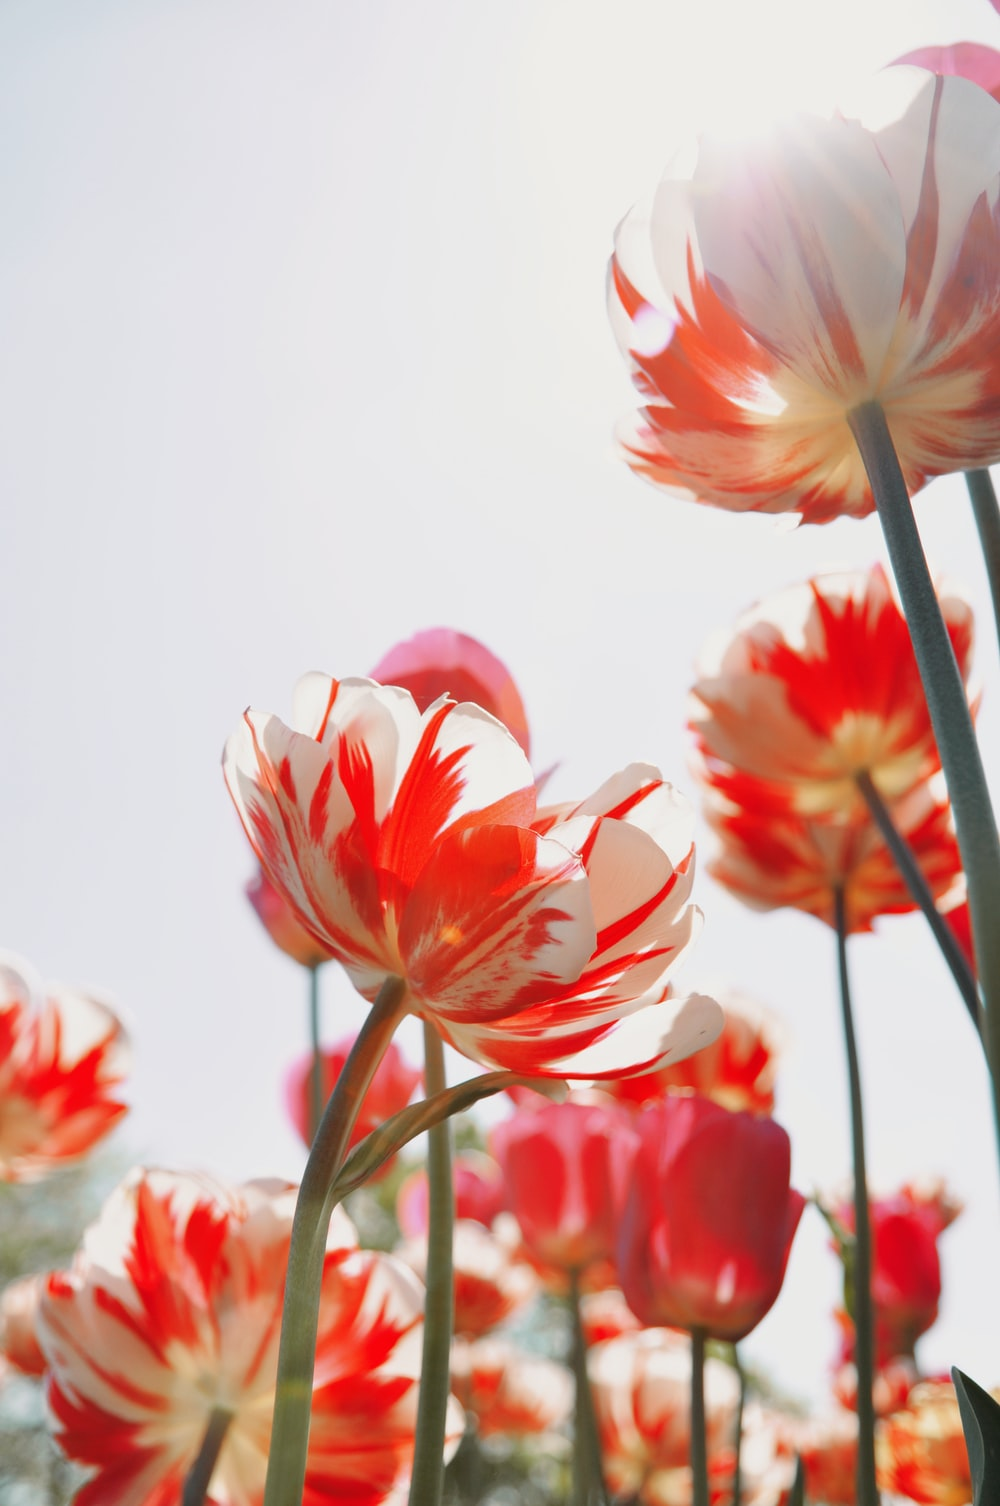 full-bloomed red and white tulip flowers